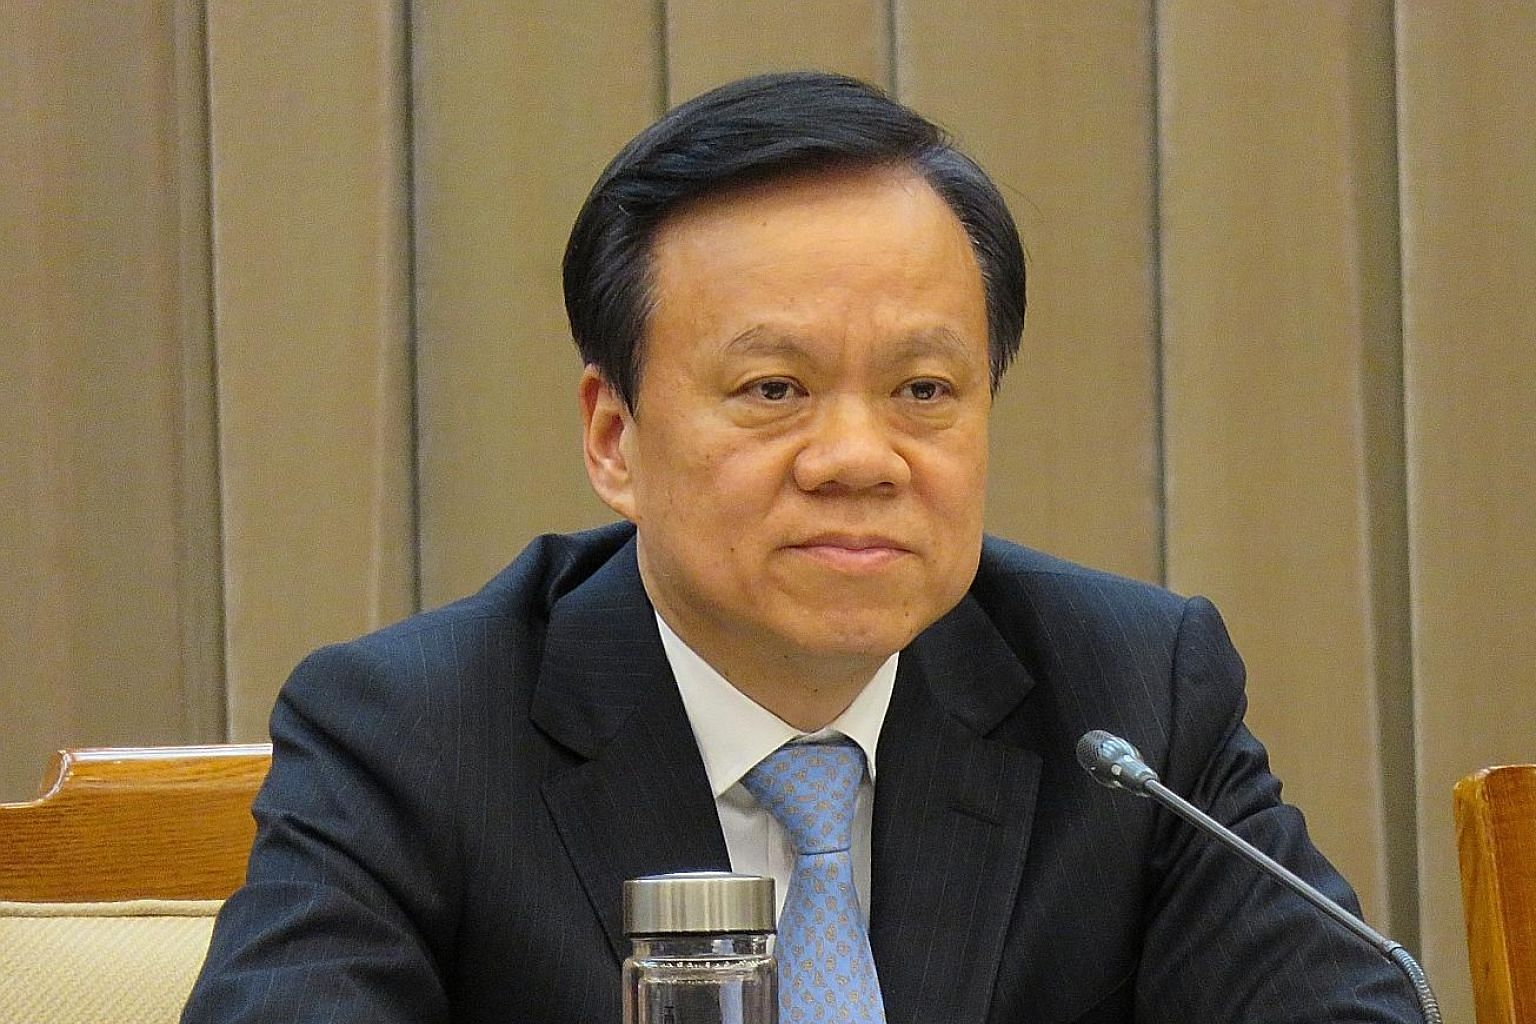 Mr Chen Min'er, who will be 57 in September, was until earlier this month the party secretary of one of the poorest provinces in China.